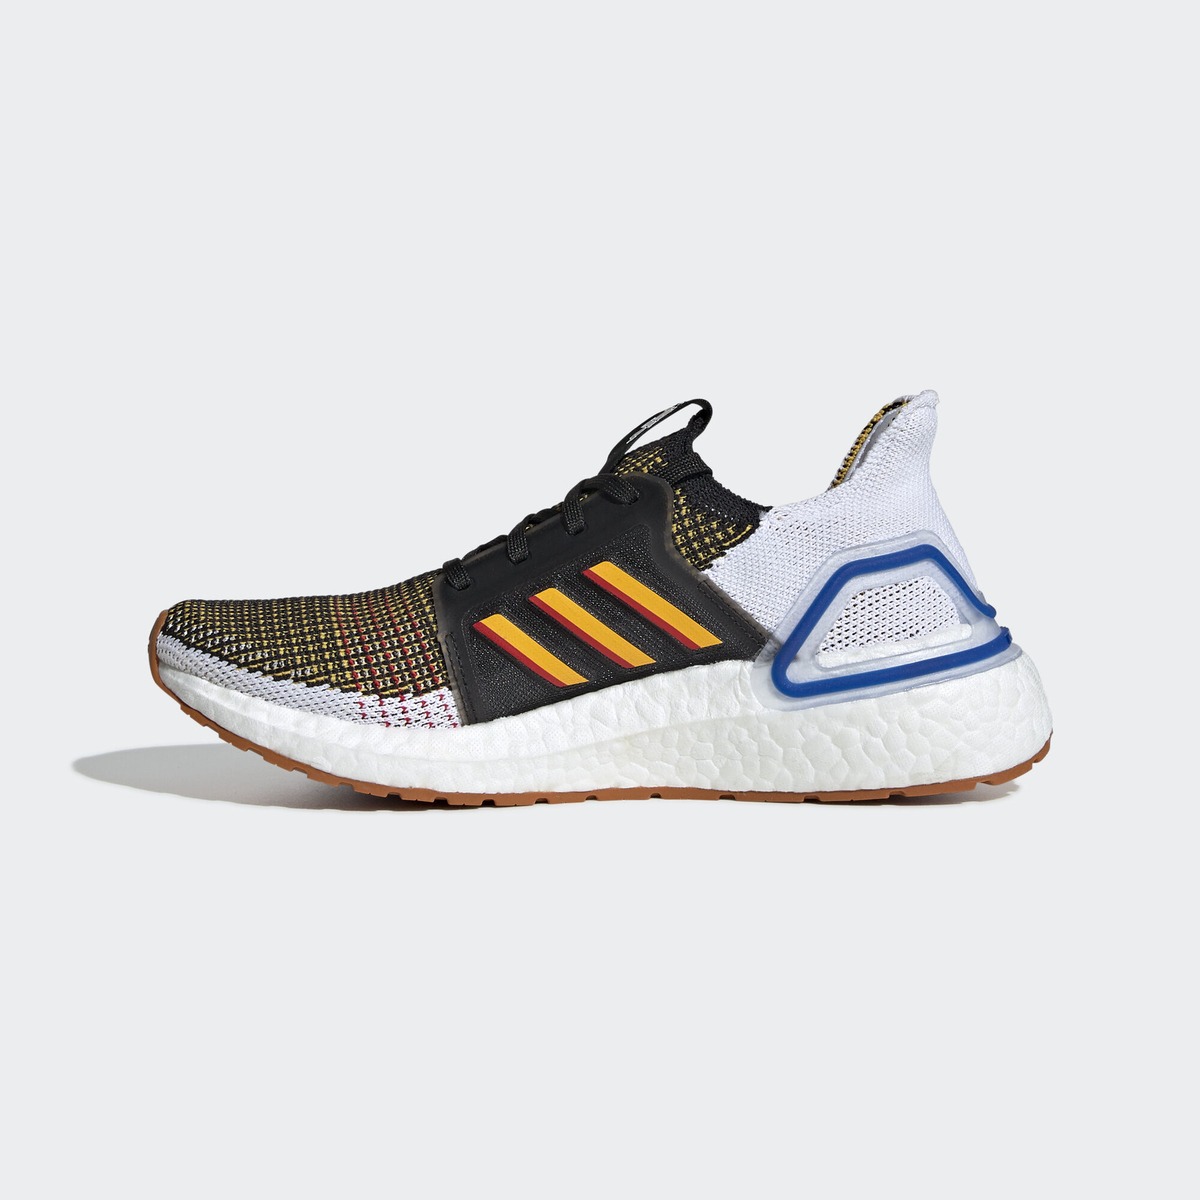 ADIDAS ULTRA BOOST 19 KIDS TOY STORY 4 CORE BLACK : ACTIVE GOLD : SCARLET 4